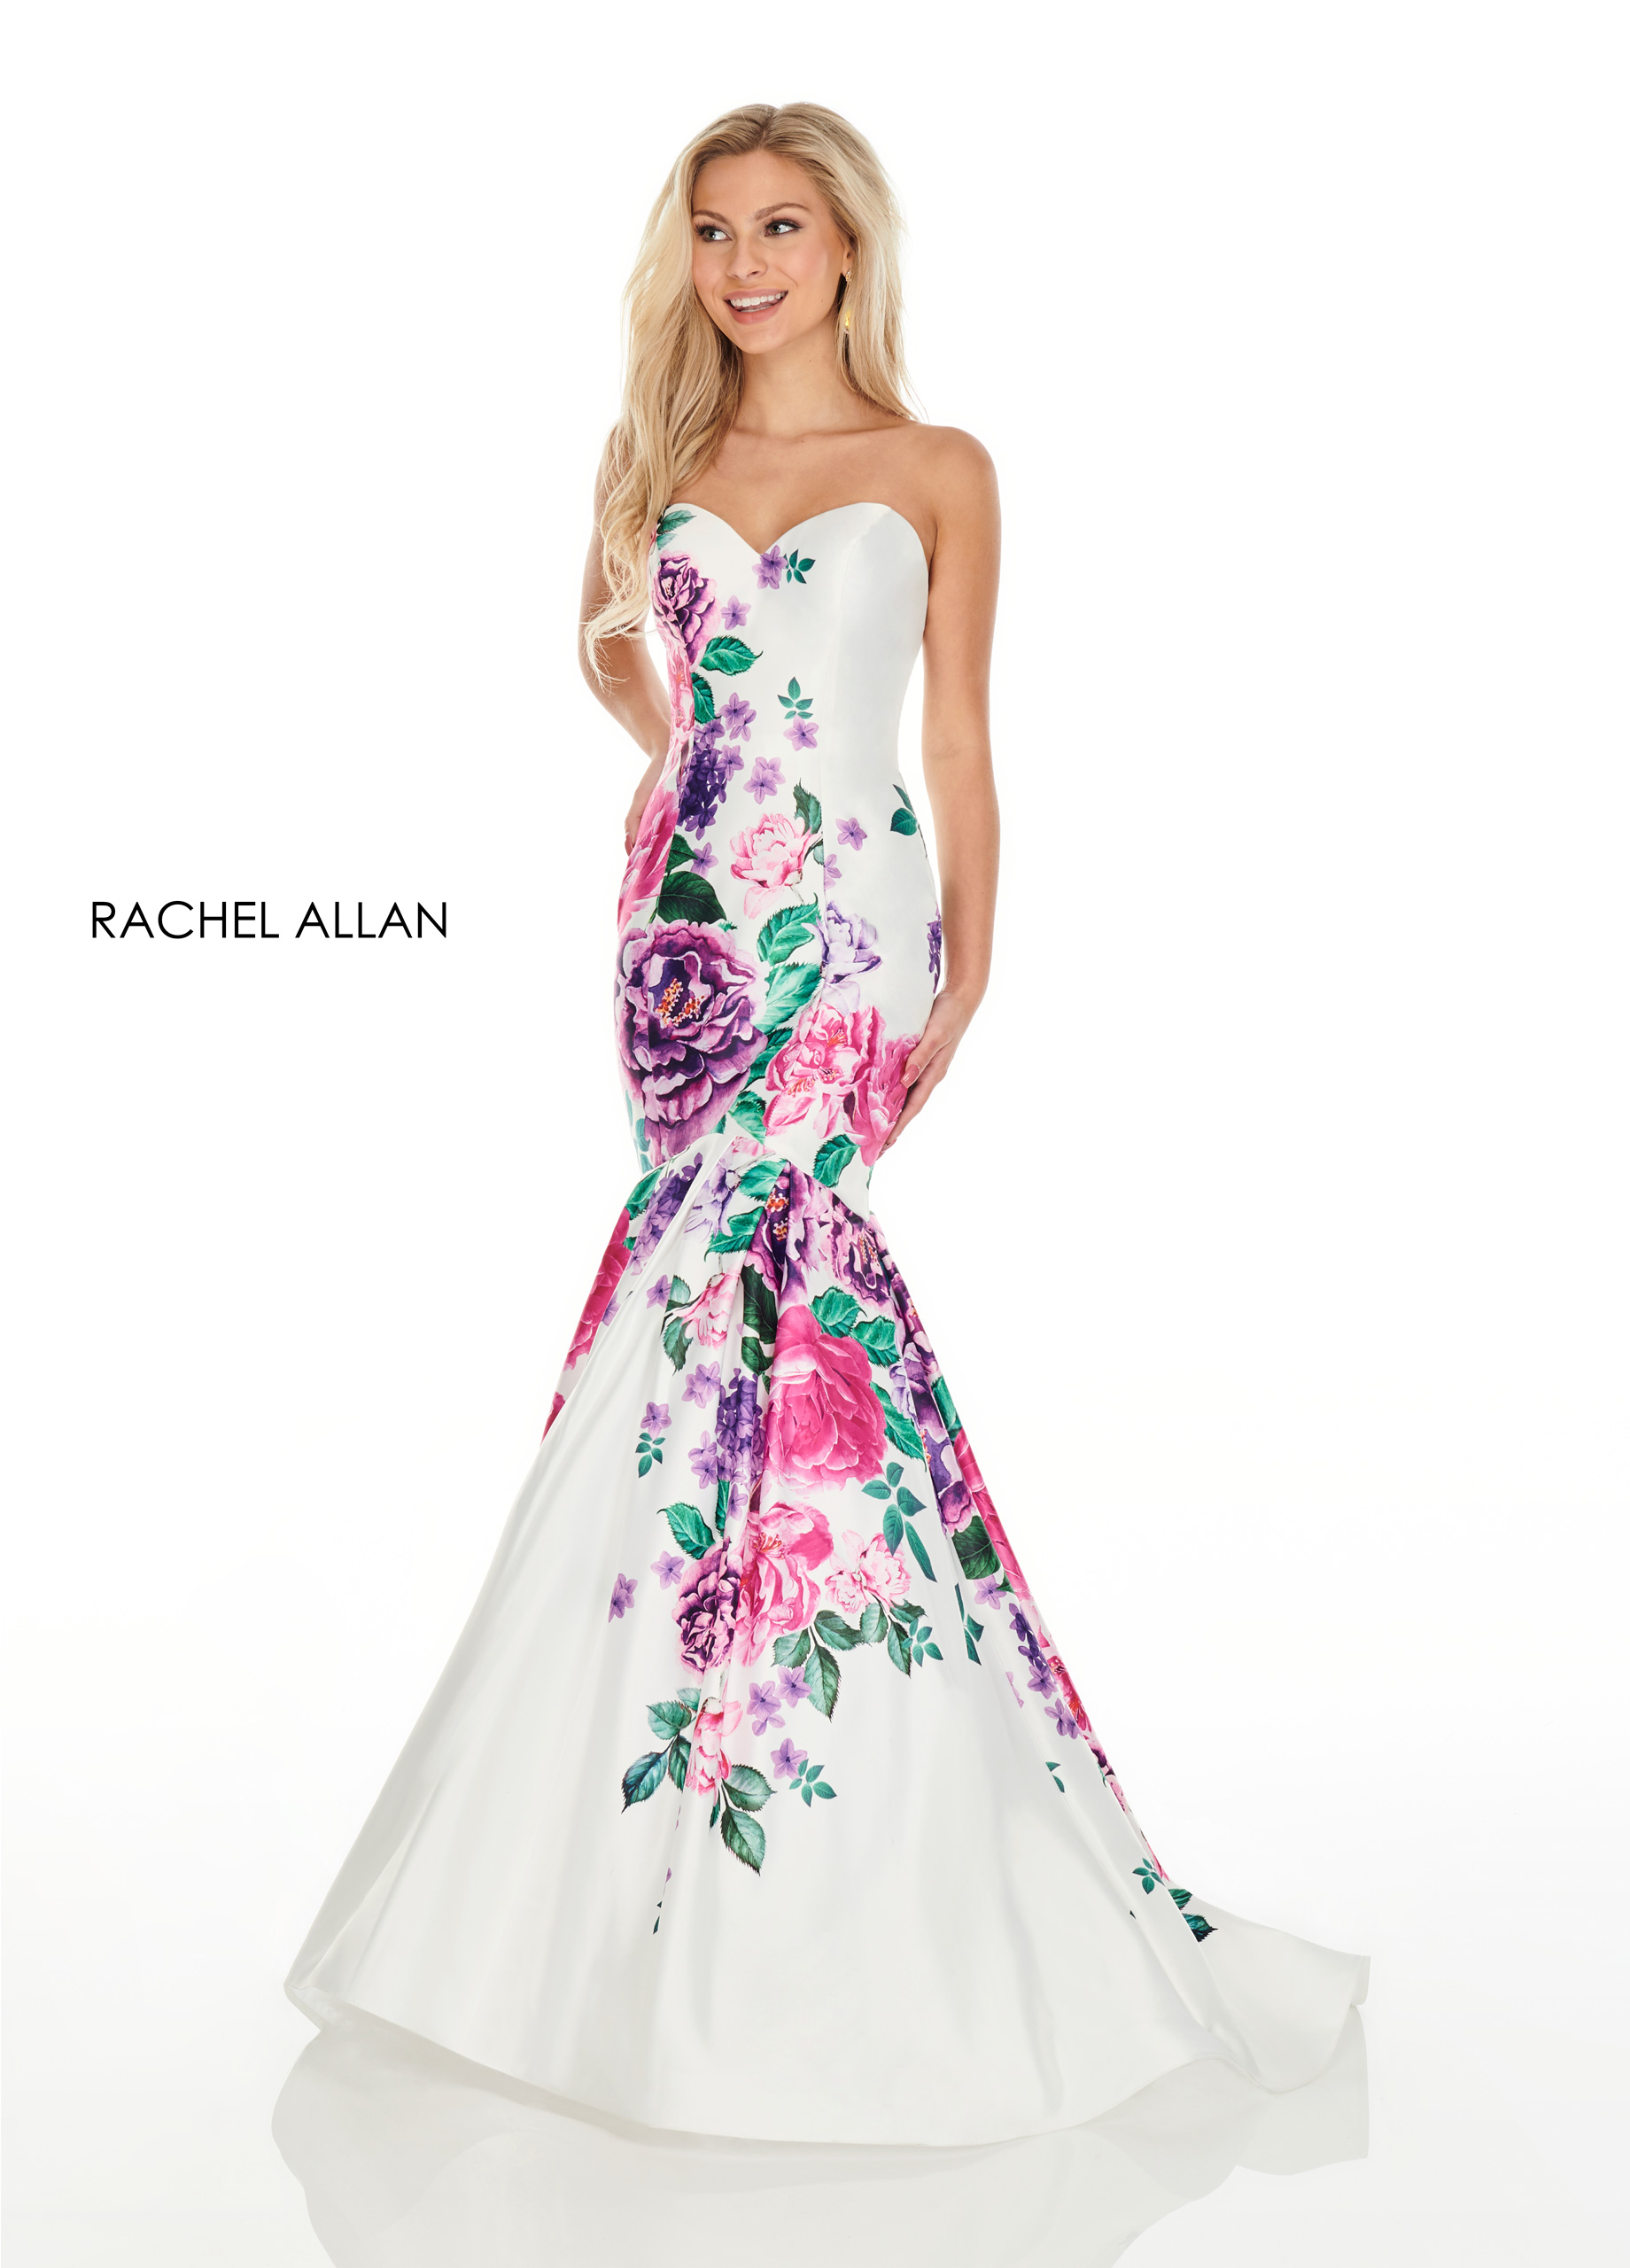 Sweetheart Mermaid Prom Dresses in White Color